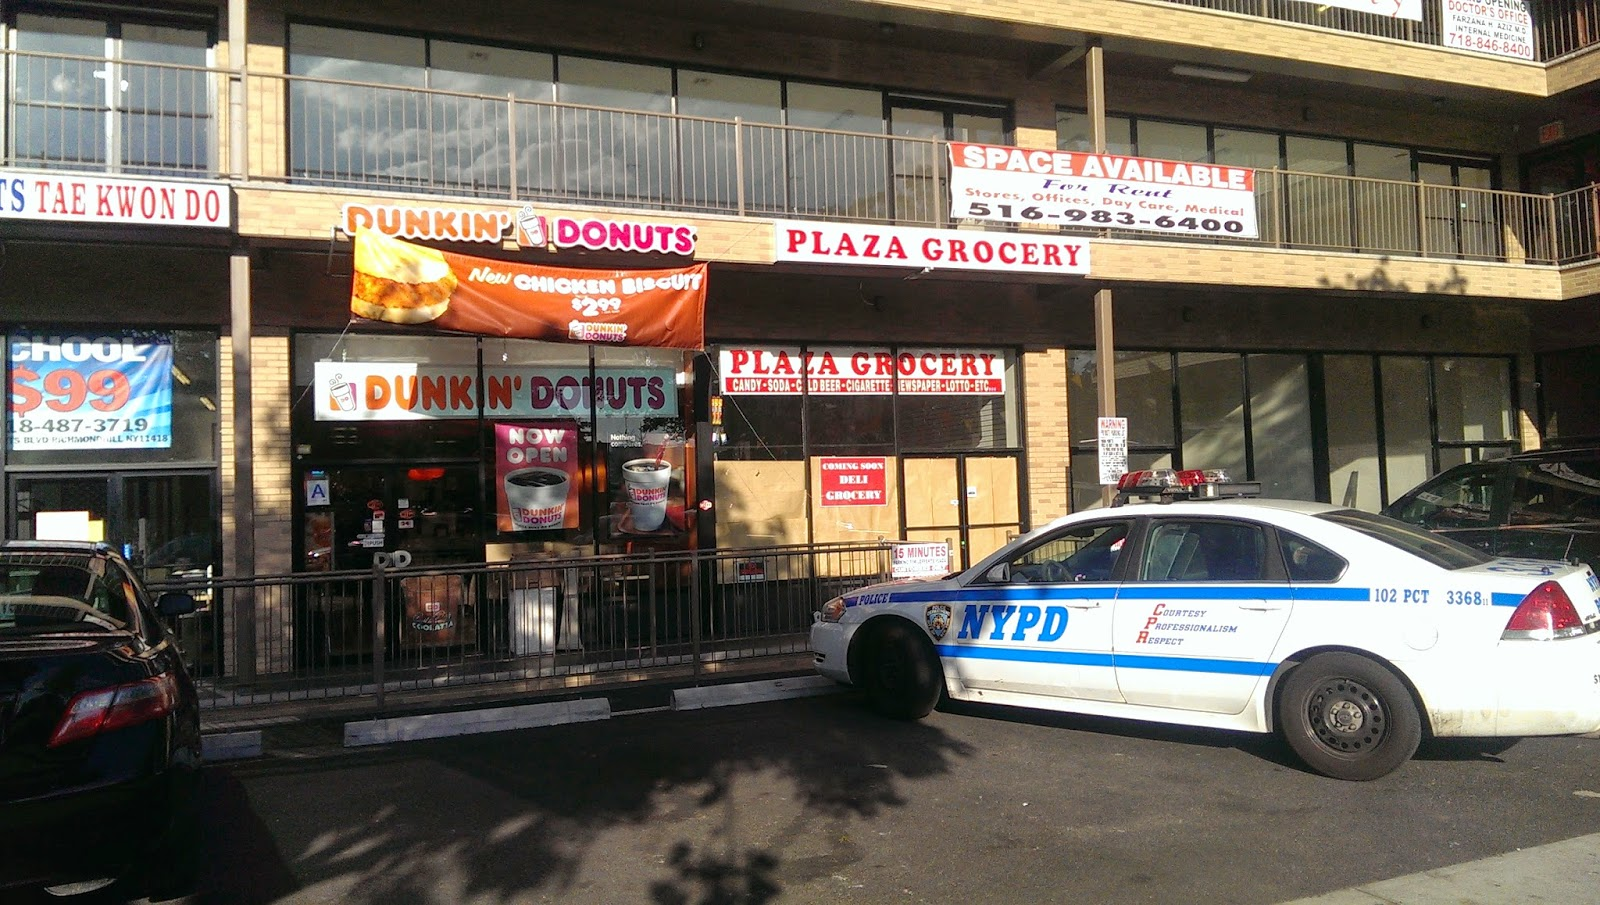 NYPD Eating Donuts at Dunkin Donuts